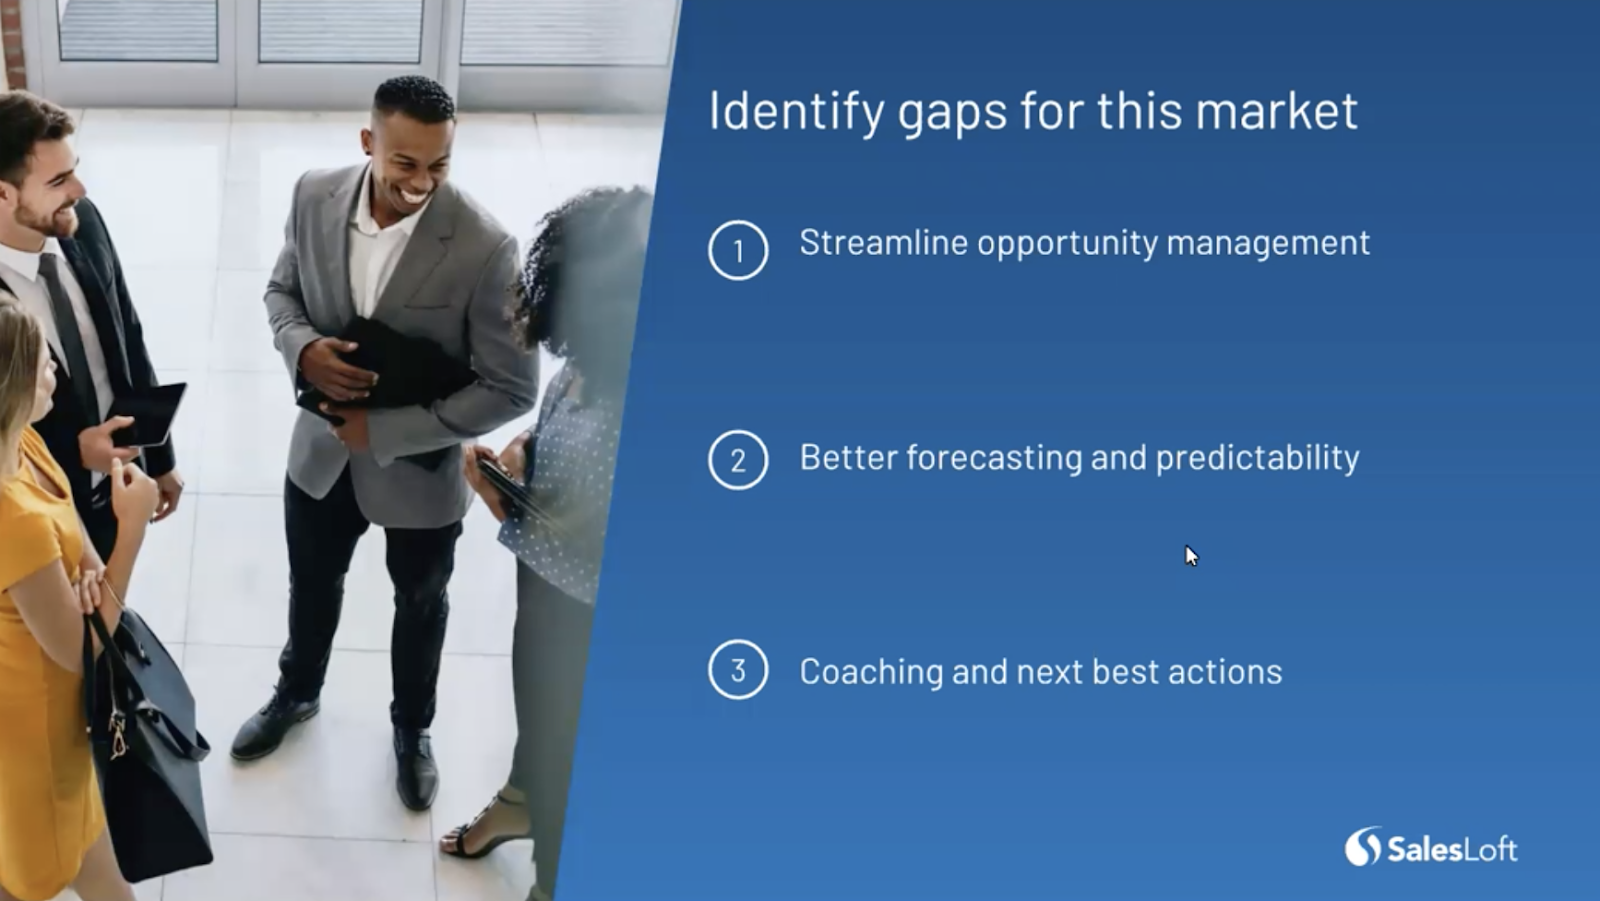 Identify gaps in the market by streamlining opportunity management, focusing on better forecasting and predictability, and coaching.